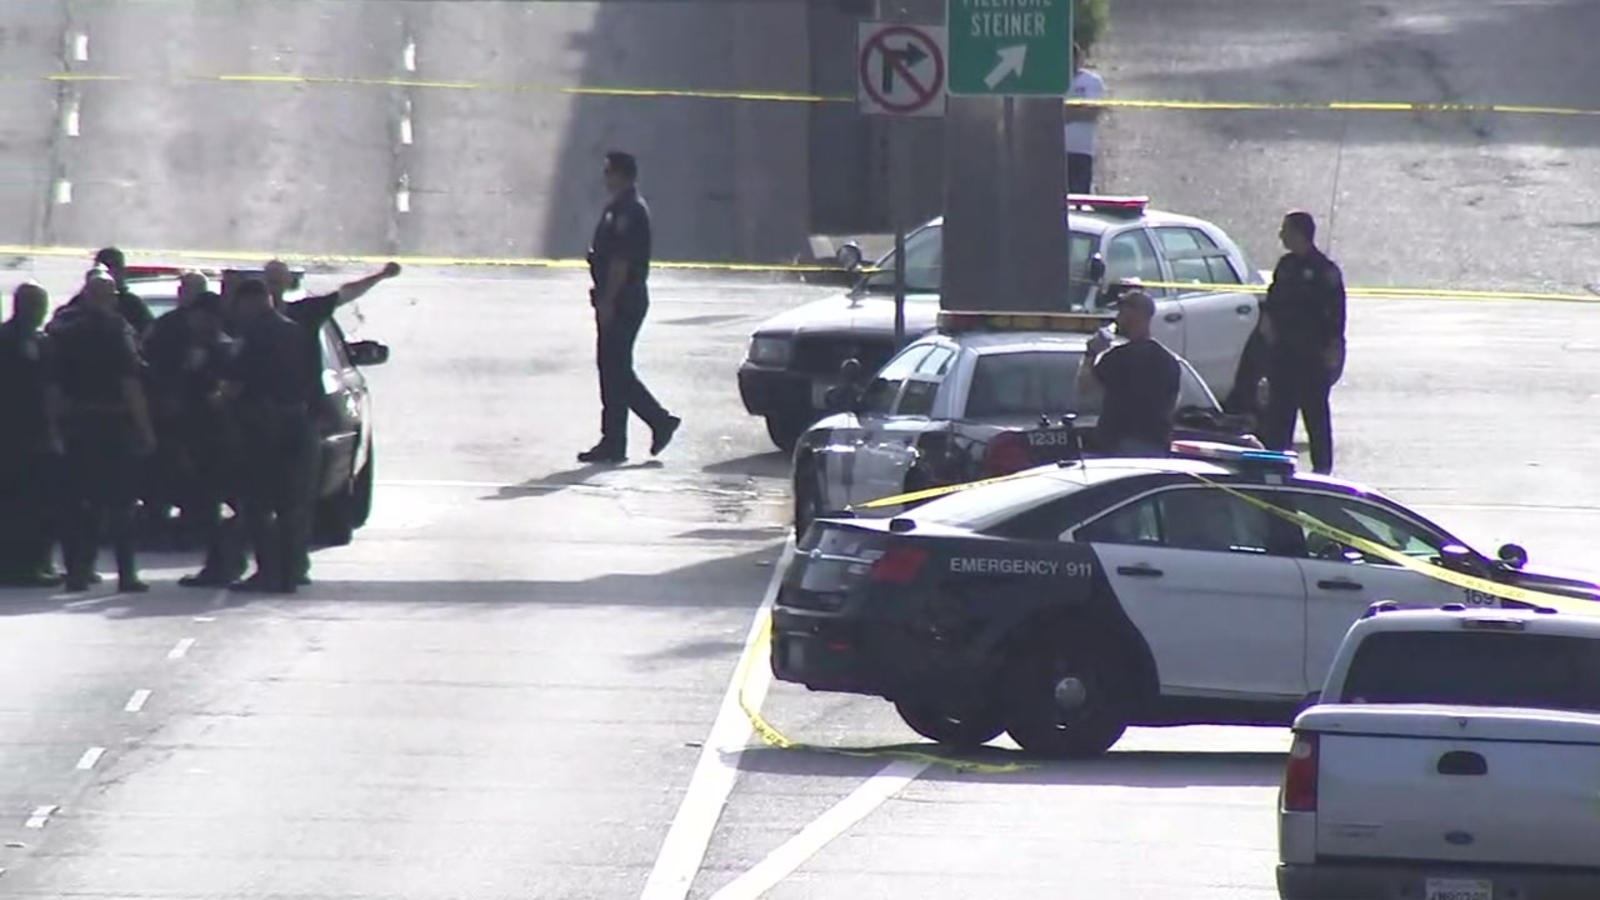 SFPD officer OK after collision involving possible burglary suspect, heavy traffic near Japantown